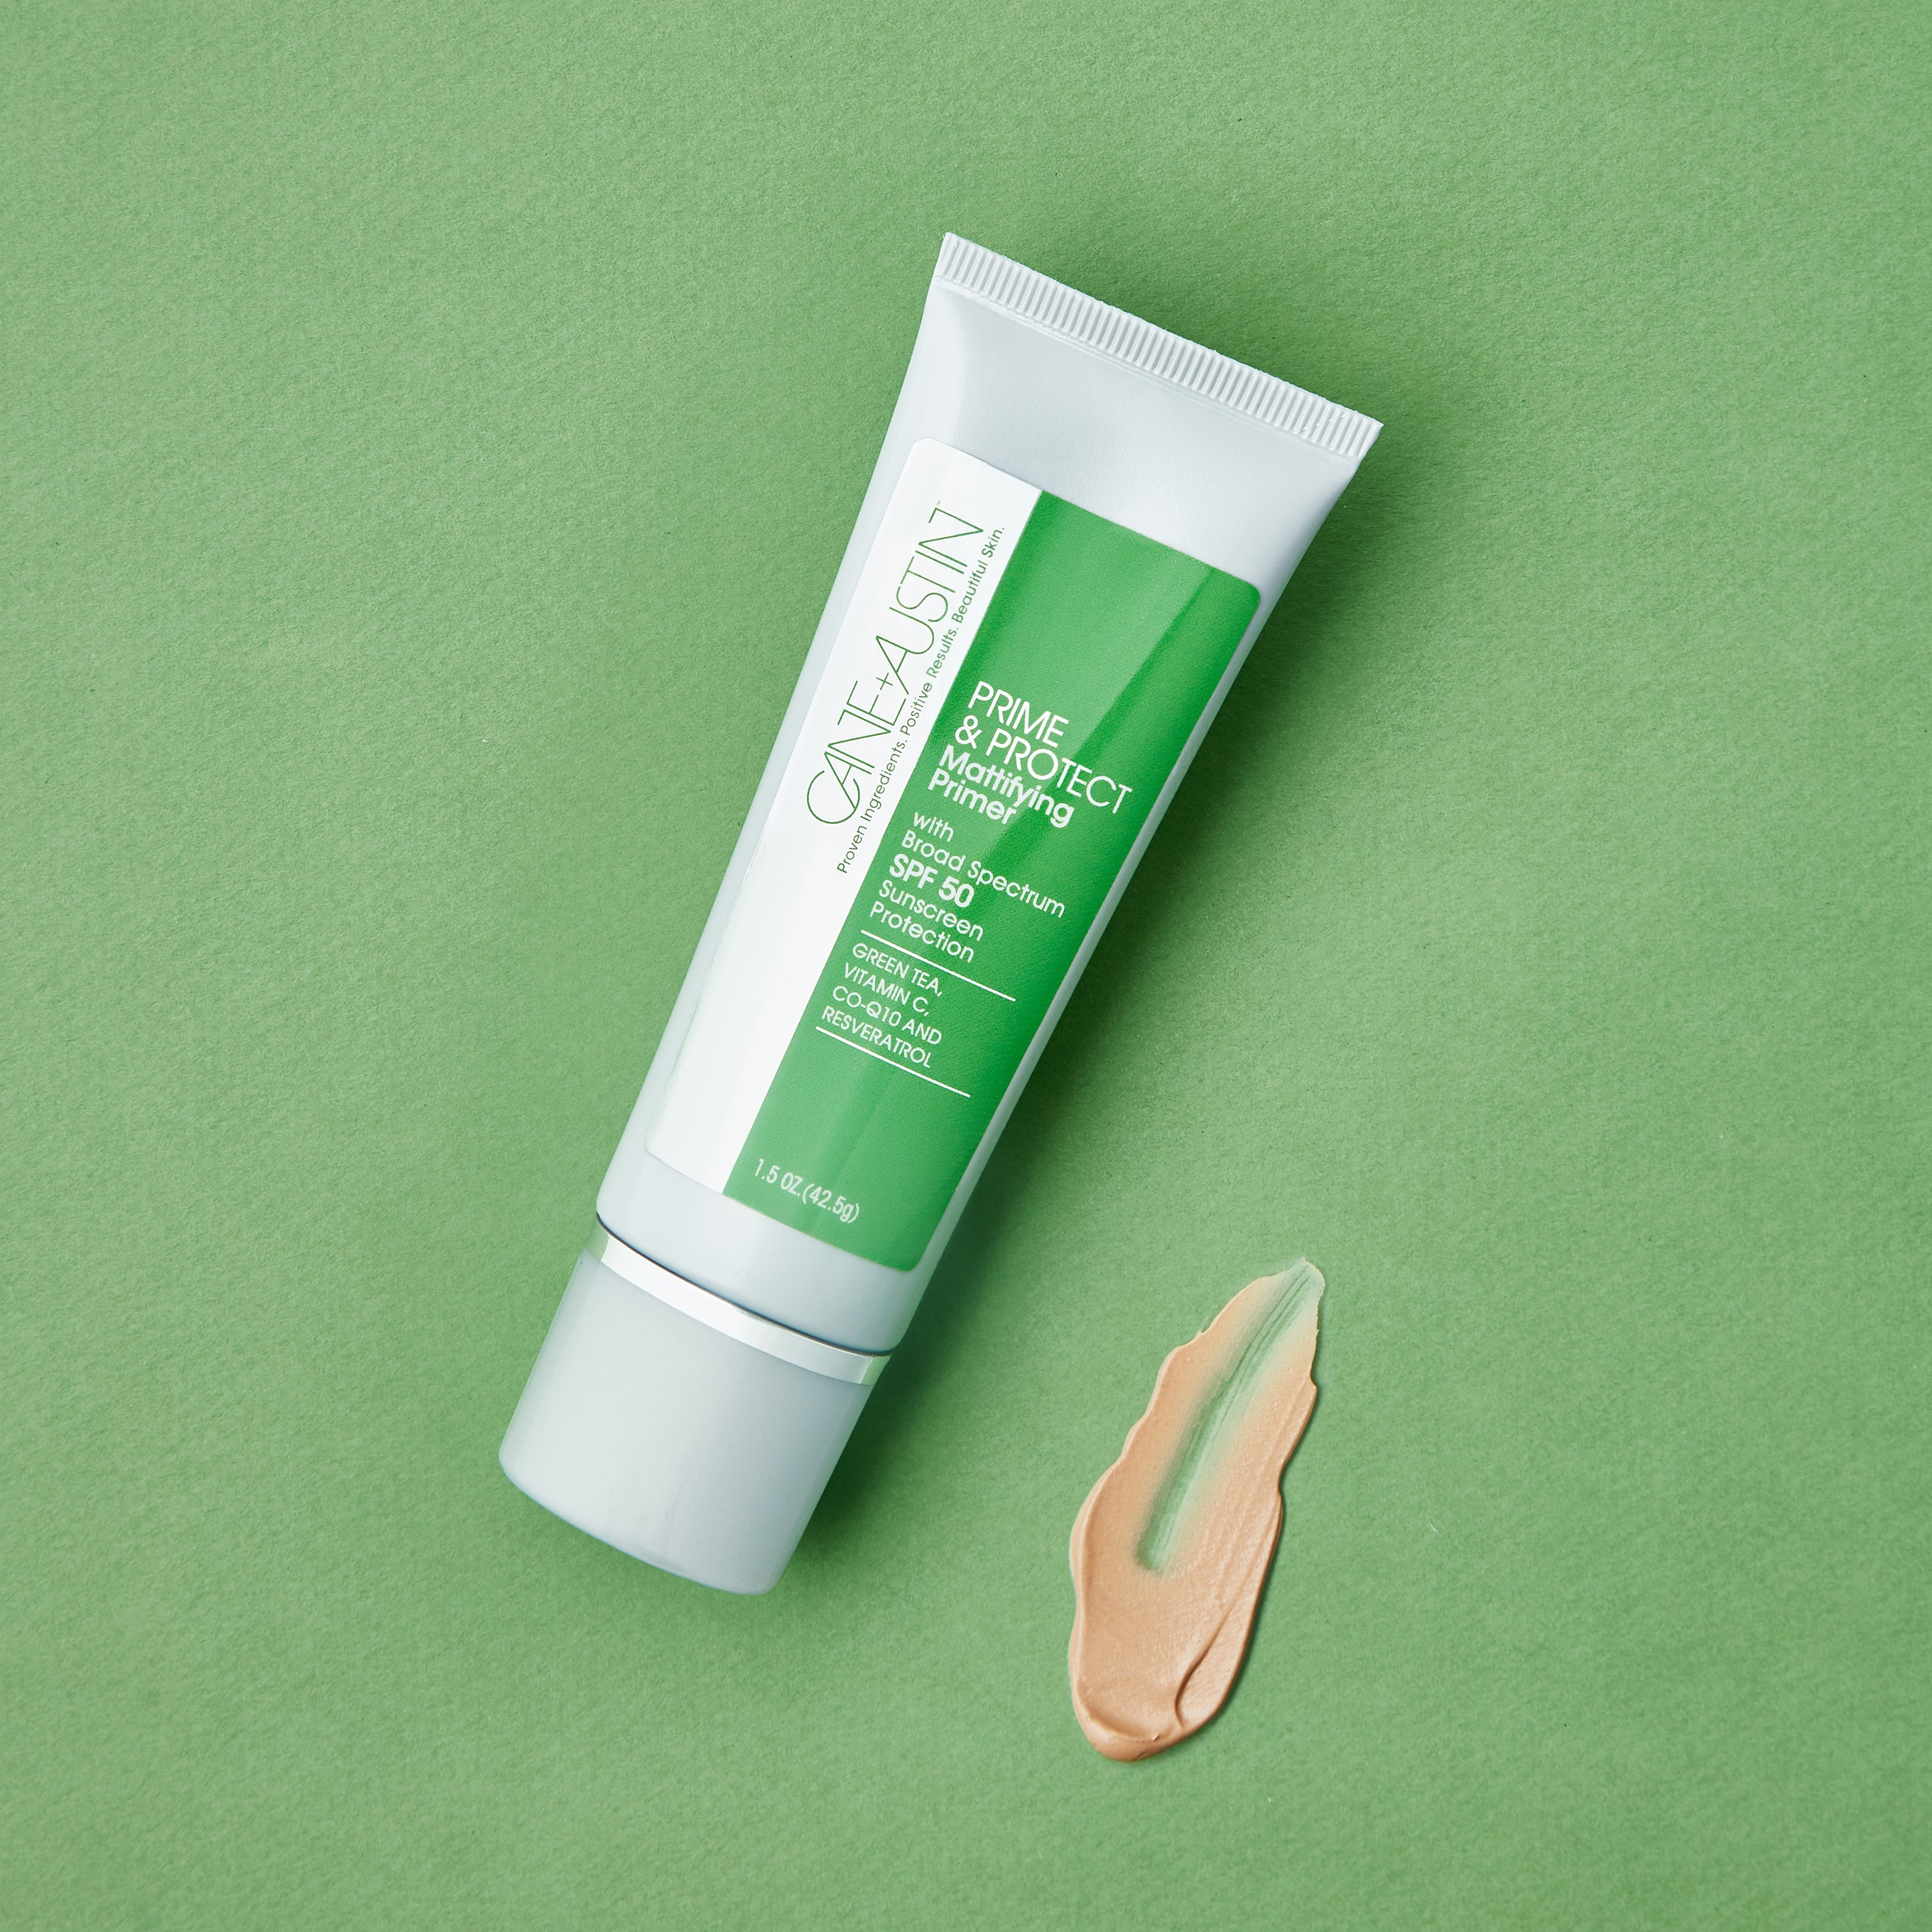 Prime + Protect Mattifying Primer with SPF 50